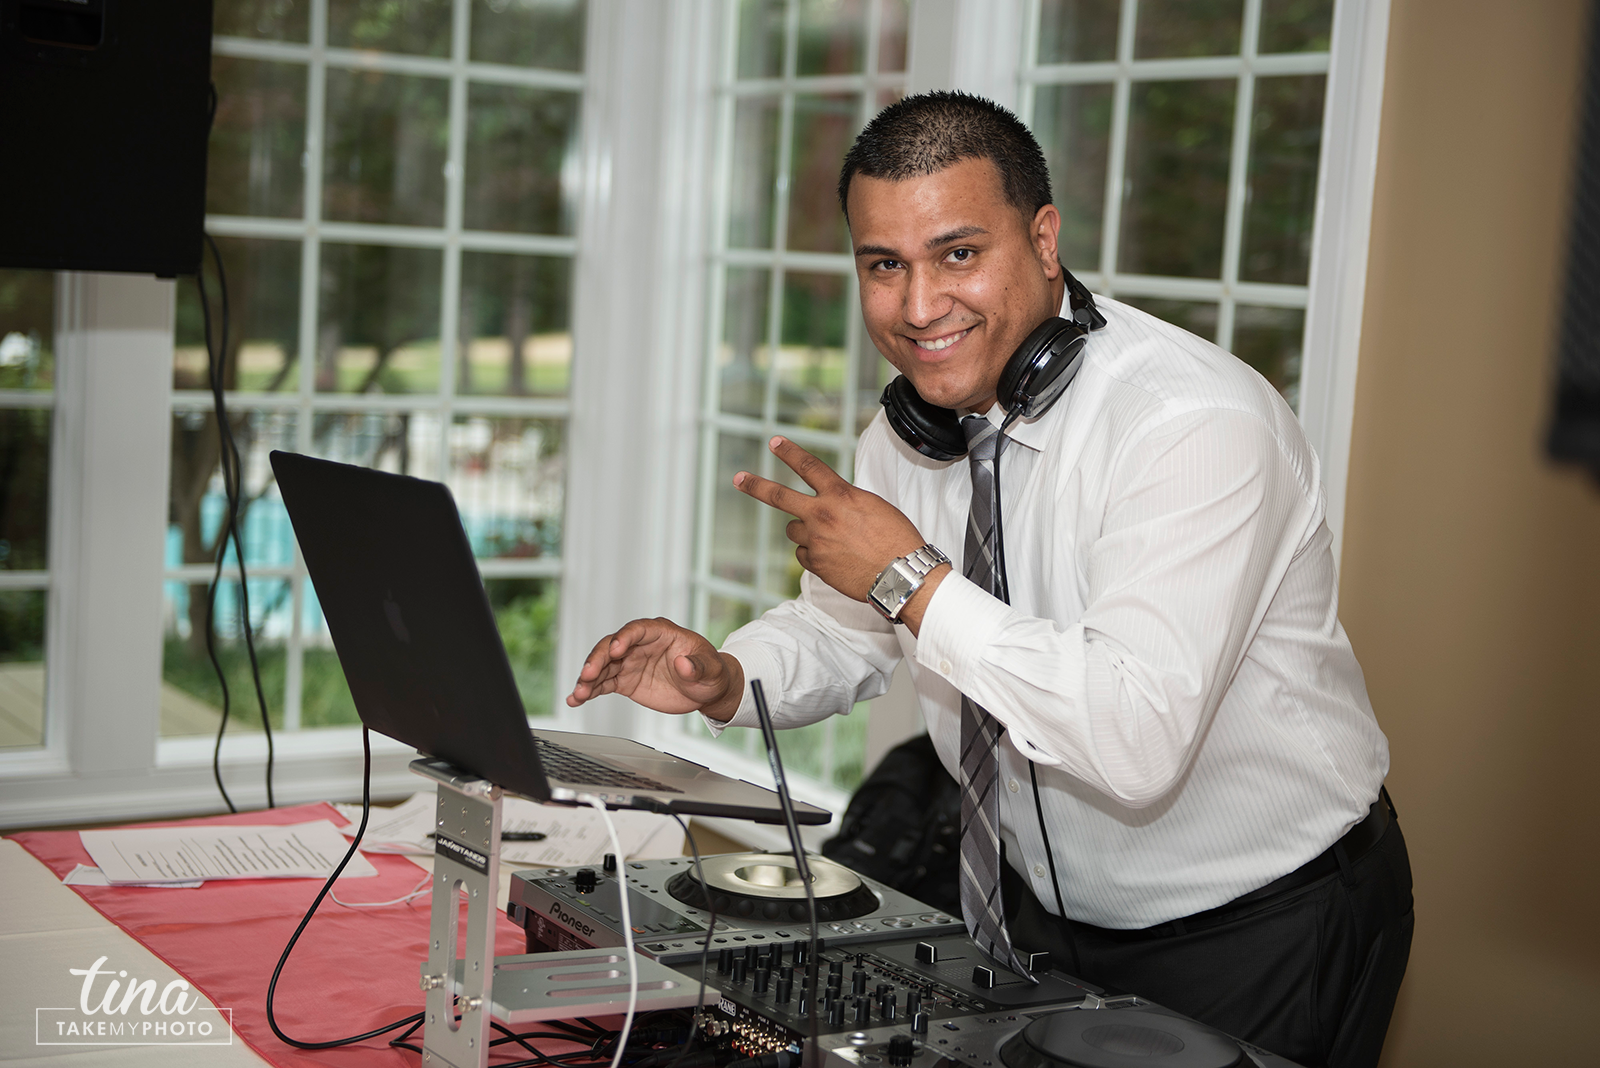 wedding-photographer-reception-fun-dj-summer-brandermill-country-club-virginia